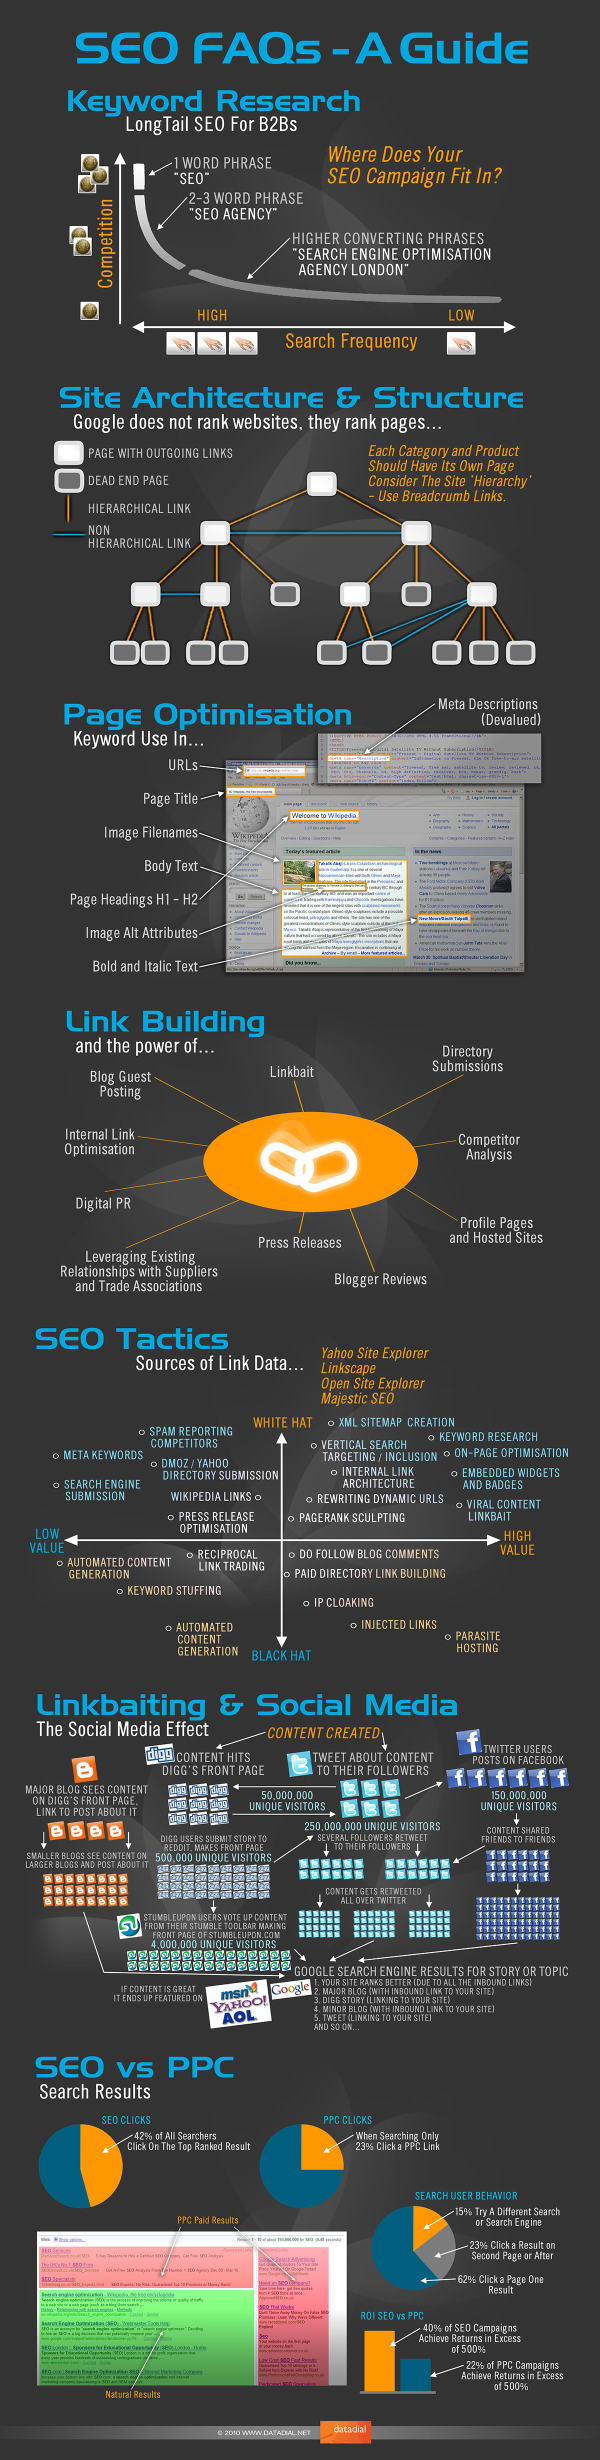 SEO Infographic1 resized 600